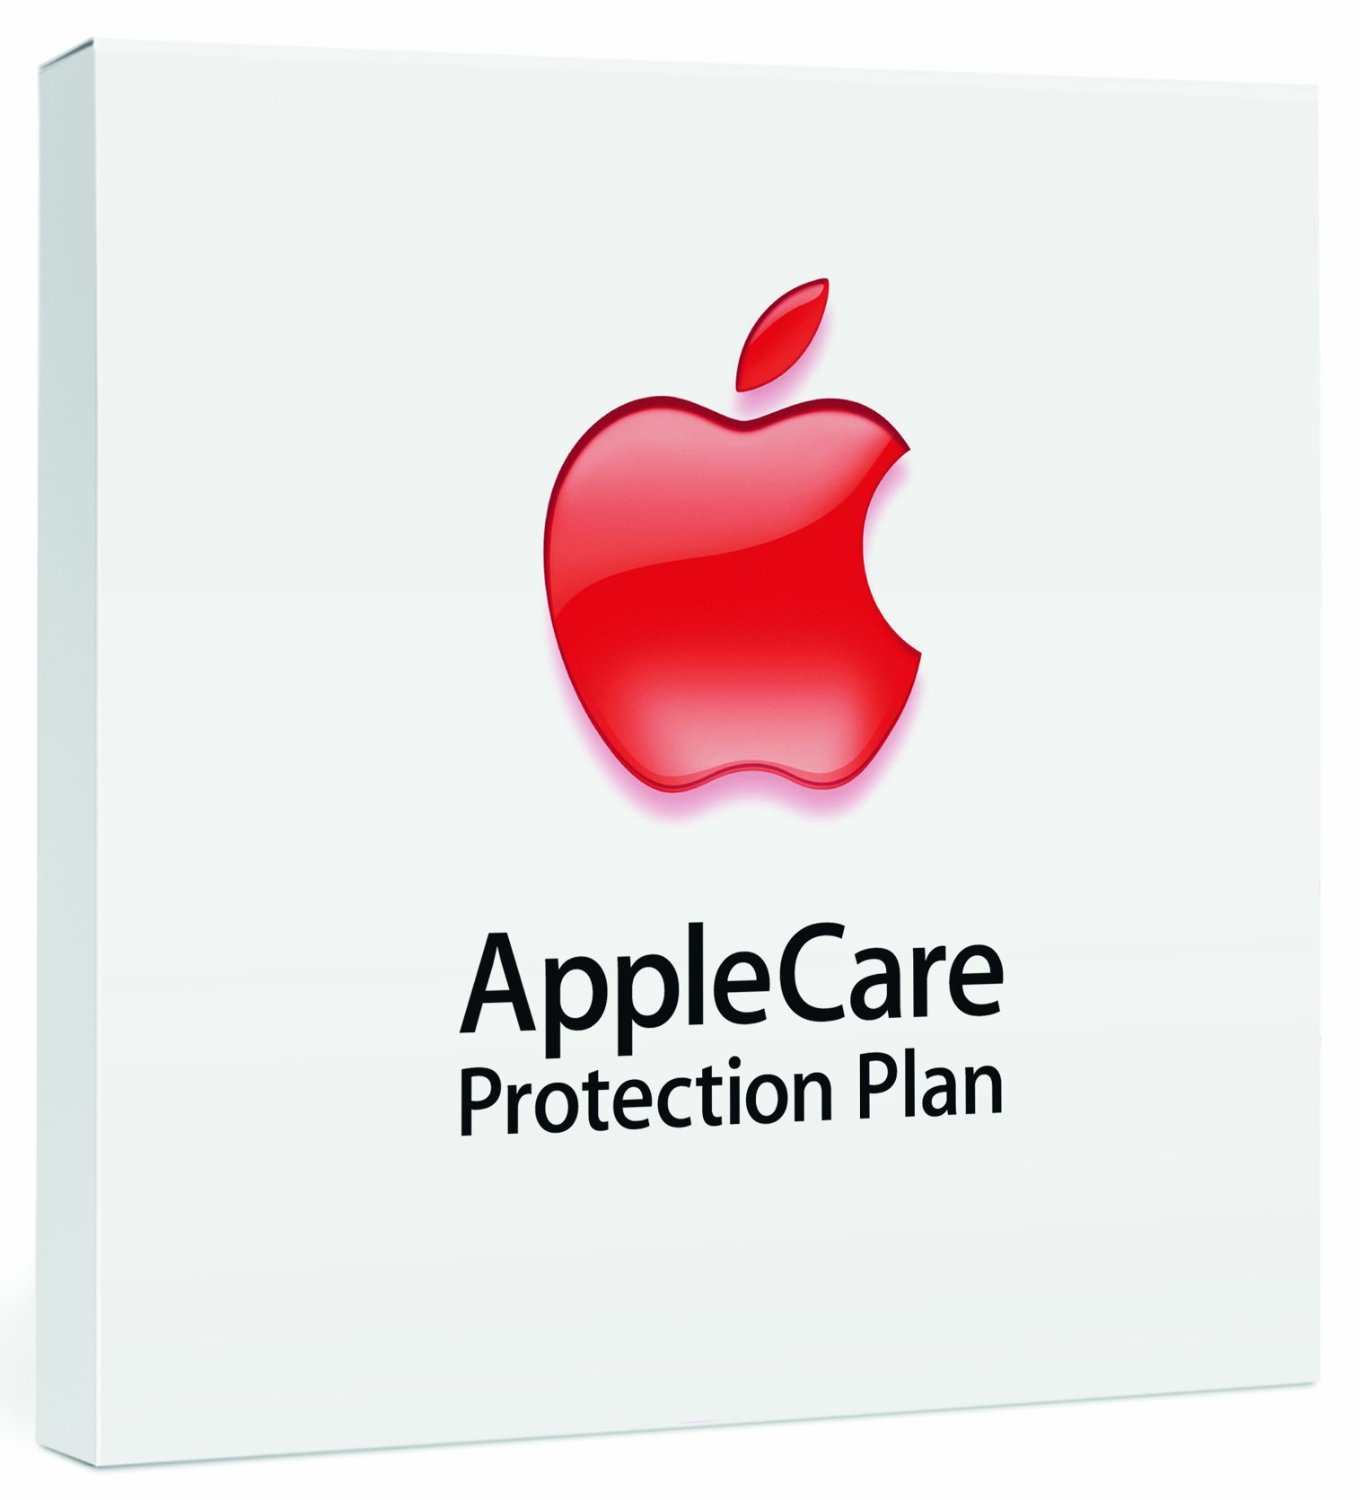 macbook apple care plan